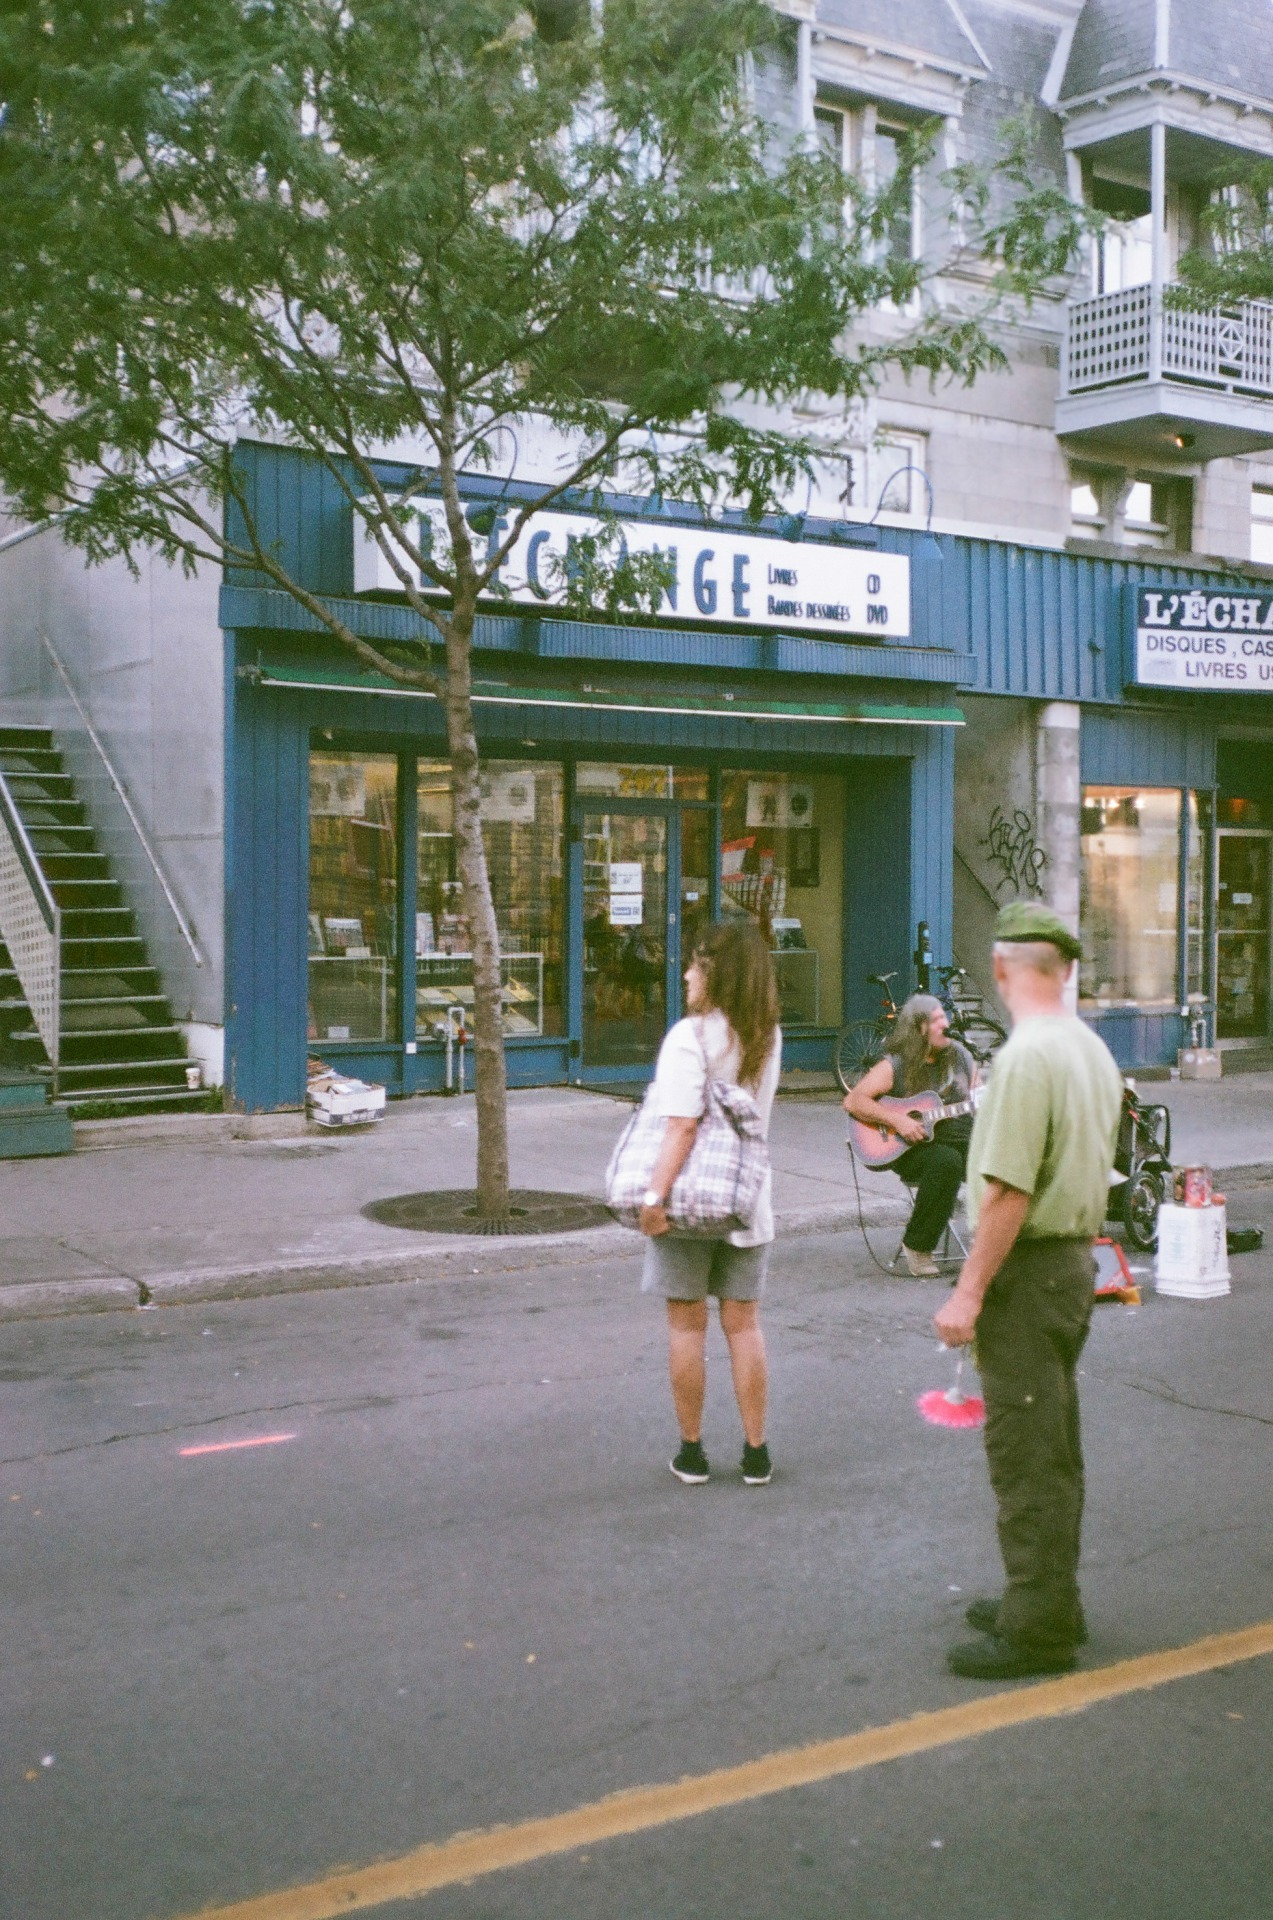 I know street artists are easy target for photos but I really like how the guy took his time to listen to the music. // montreal used an expired film from 2002. The results are so grainy :/ not digging it that much